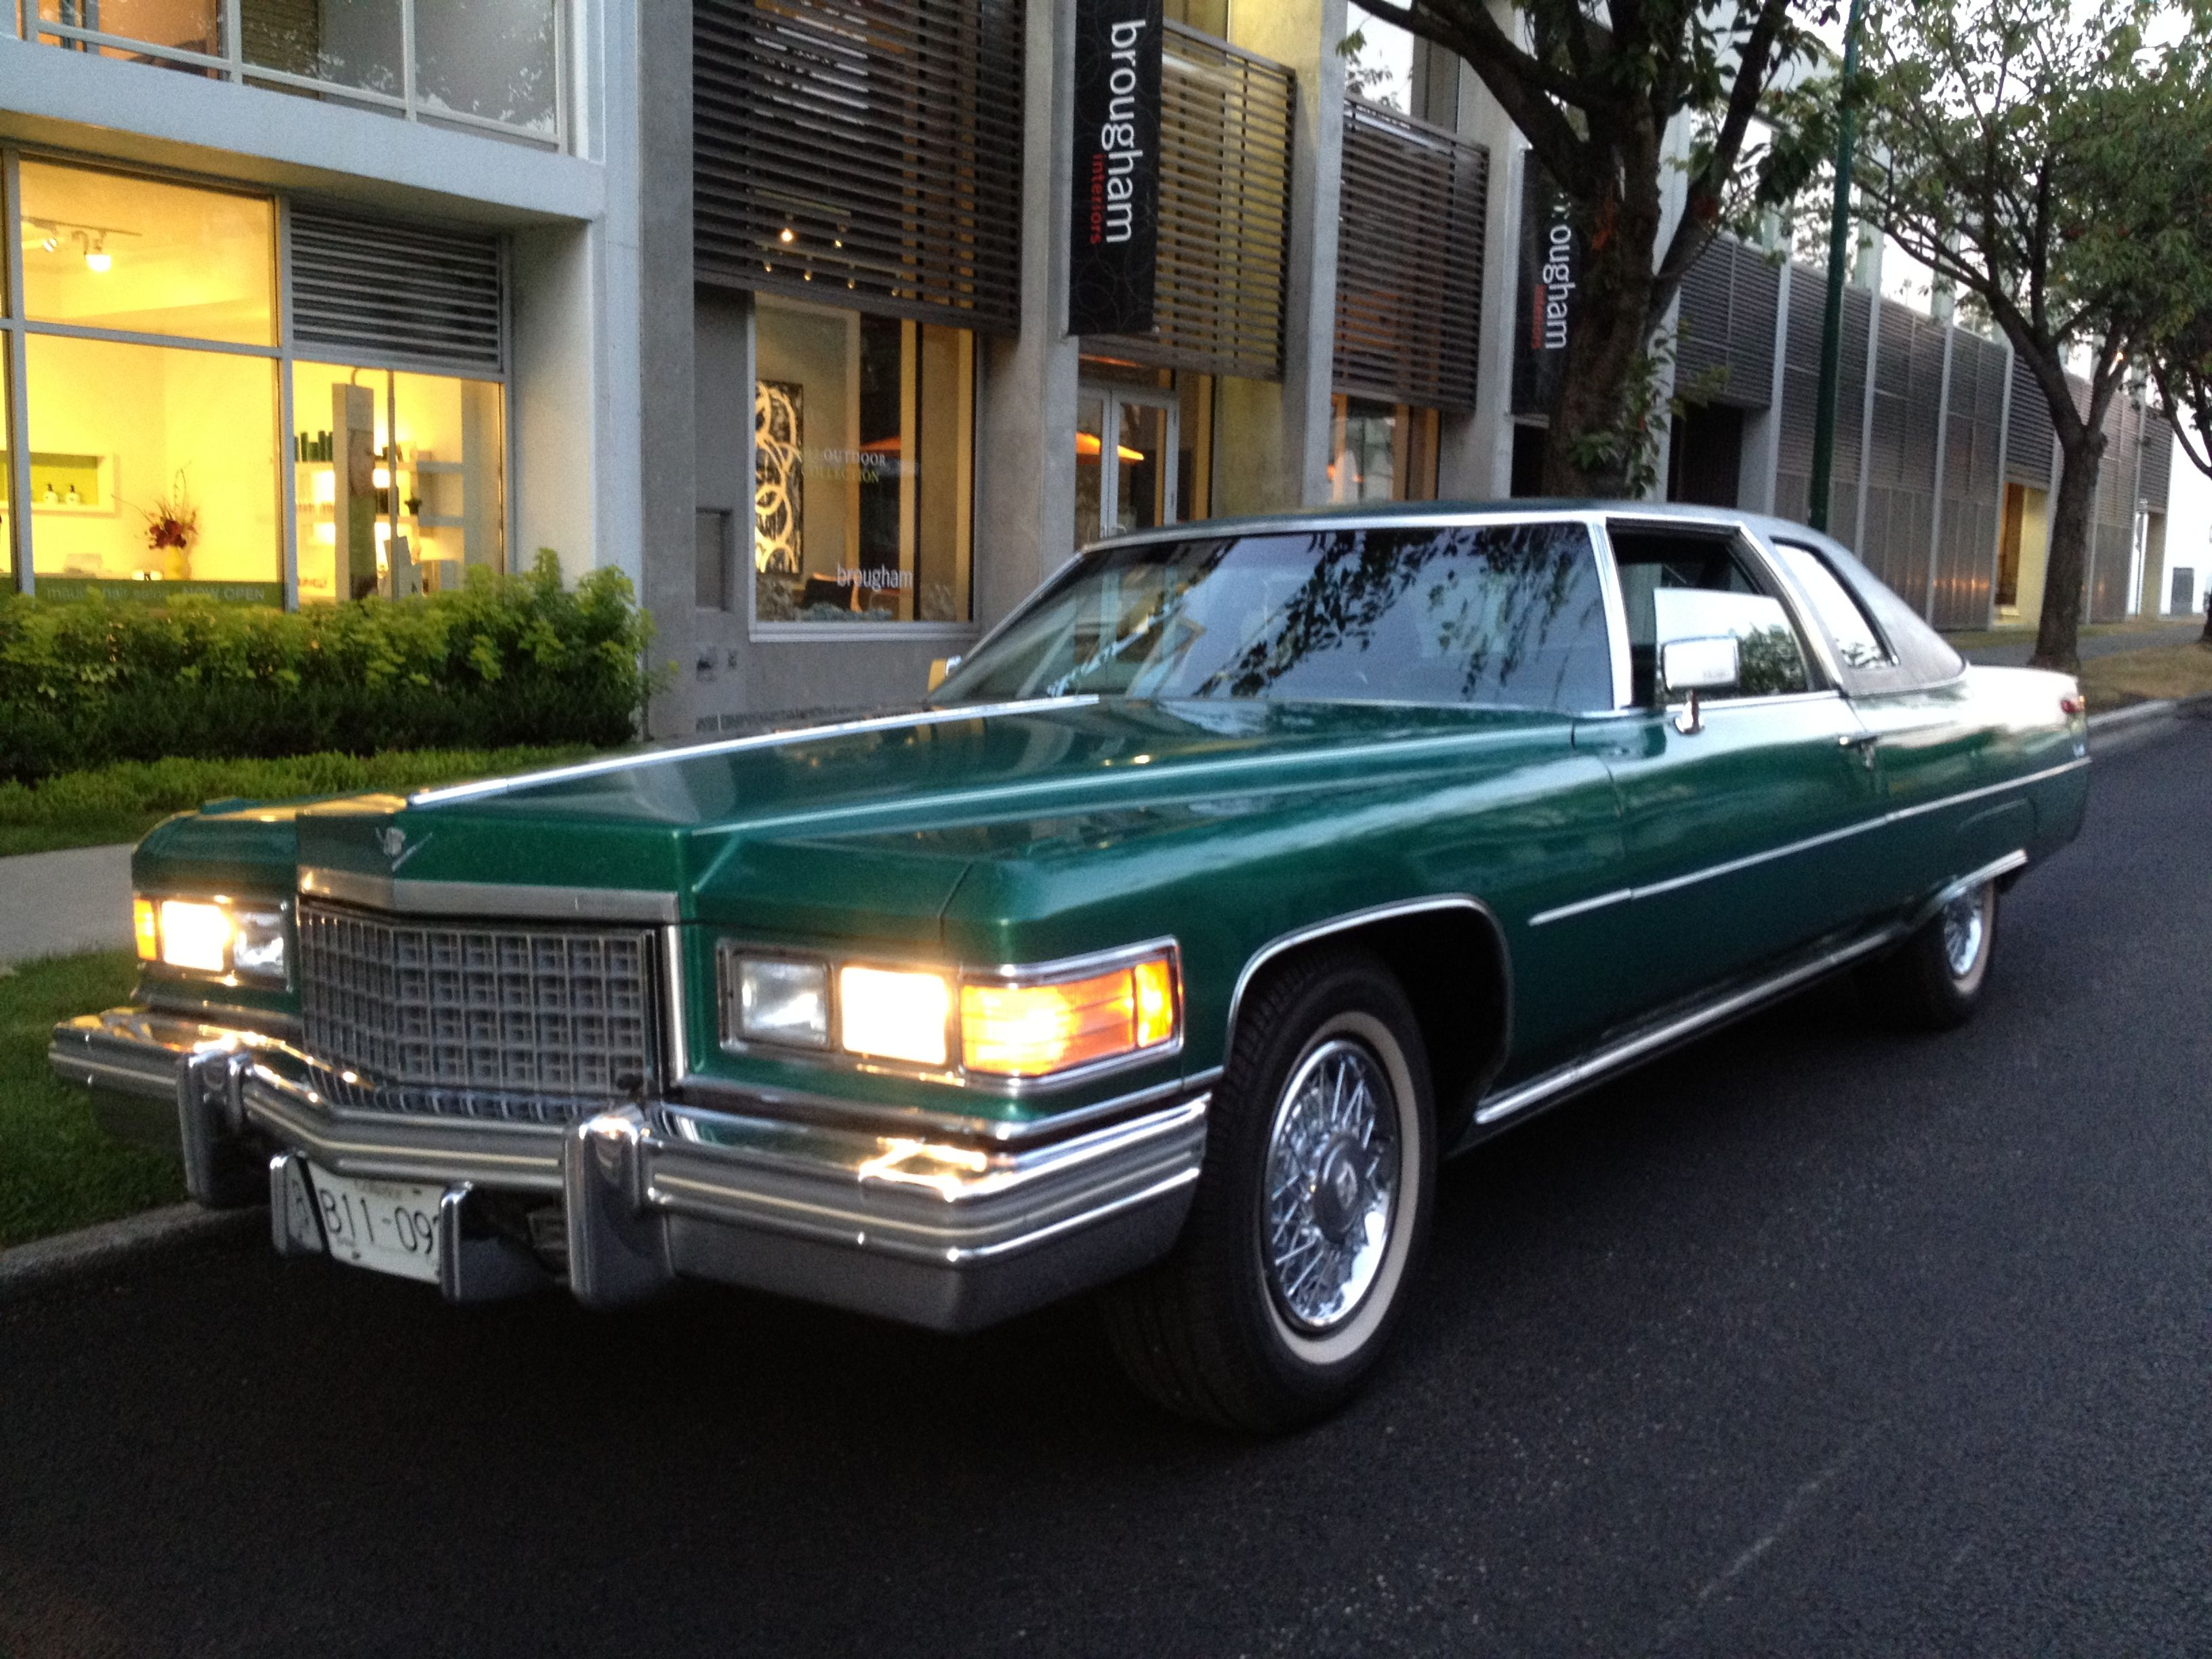 1976 Cadillac Coupe Deville My Style Pinterest